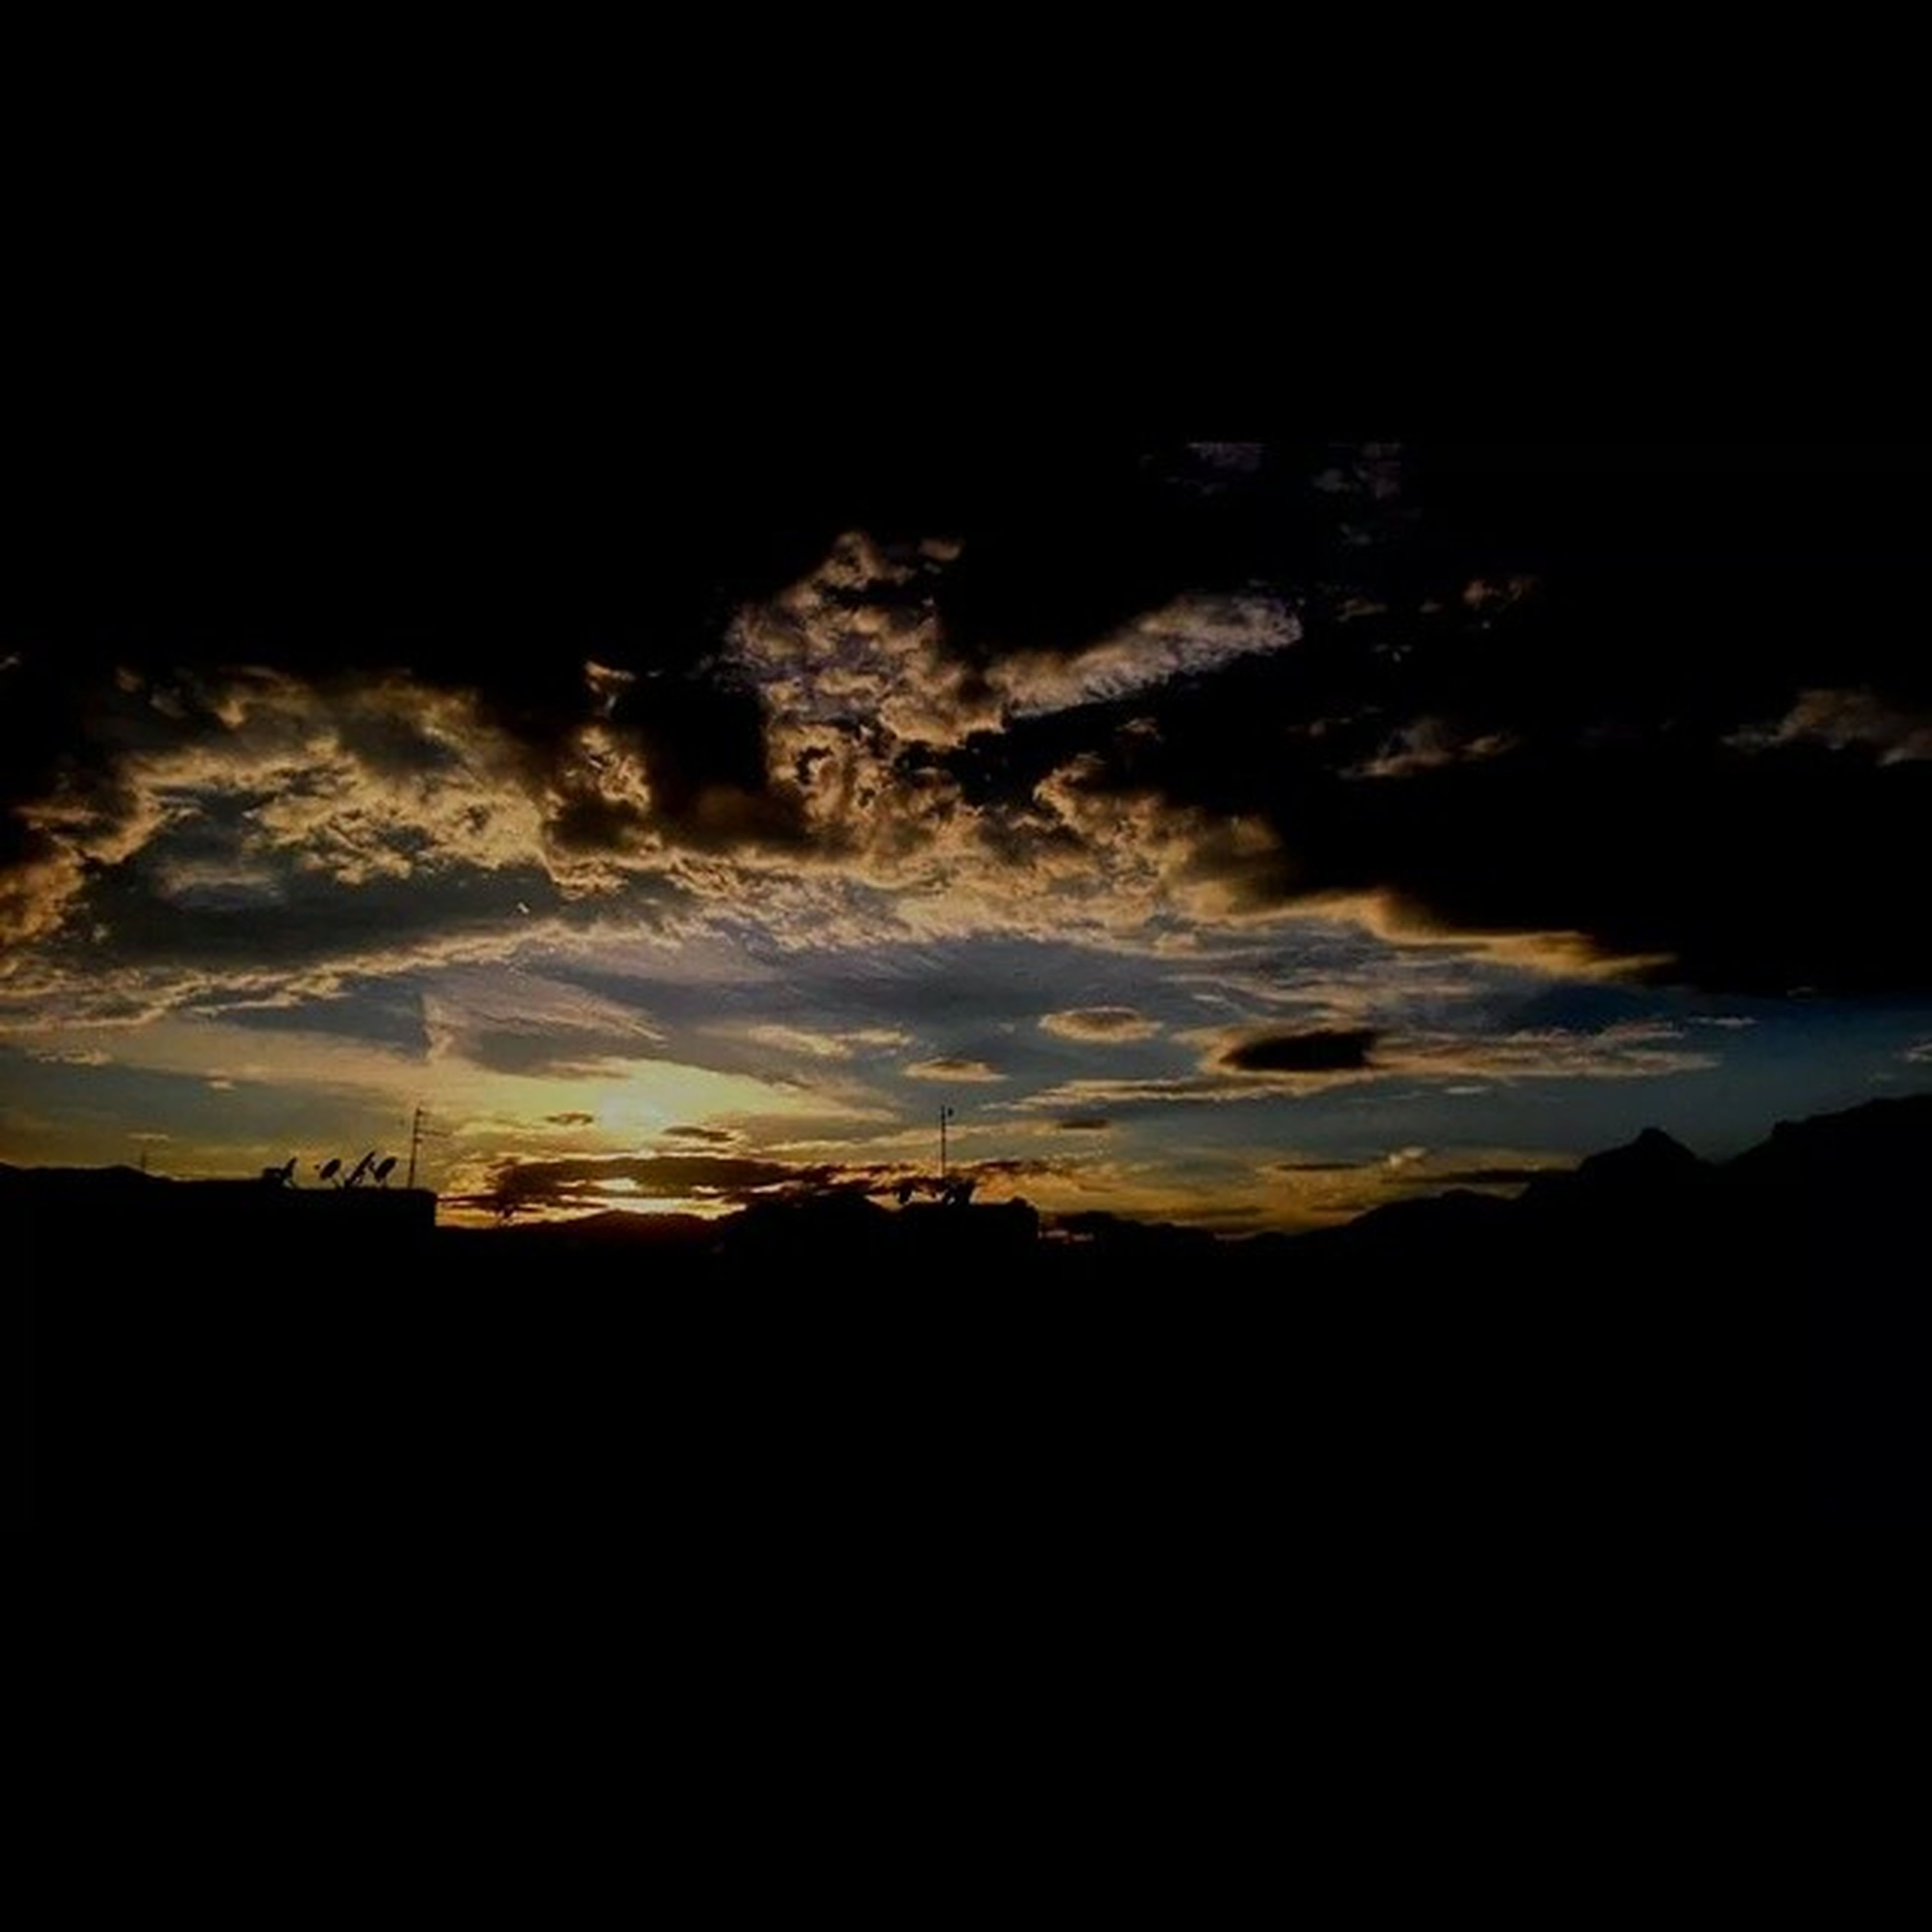 silhouette, sky, sunset, tranquil scene, scenics, tranquility, dark, beauty in nature, nature, landscape, idyllic, cloud - sky, dusk, outline, copy space, outdoors, cloud, night, low angle view, no people